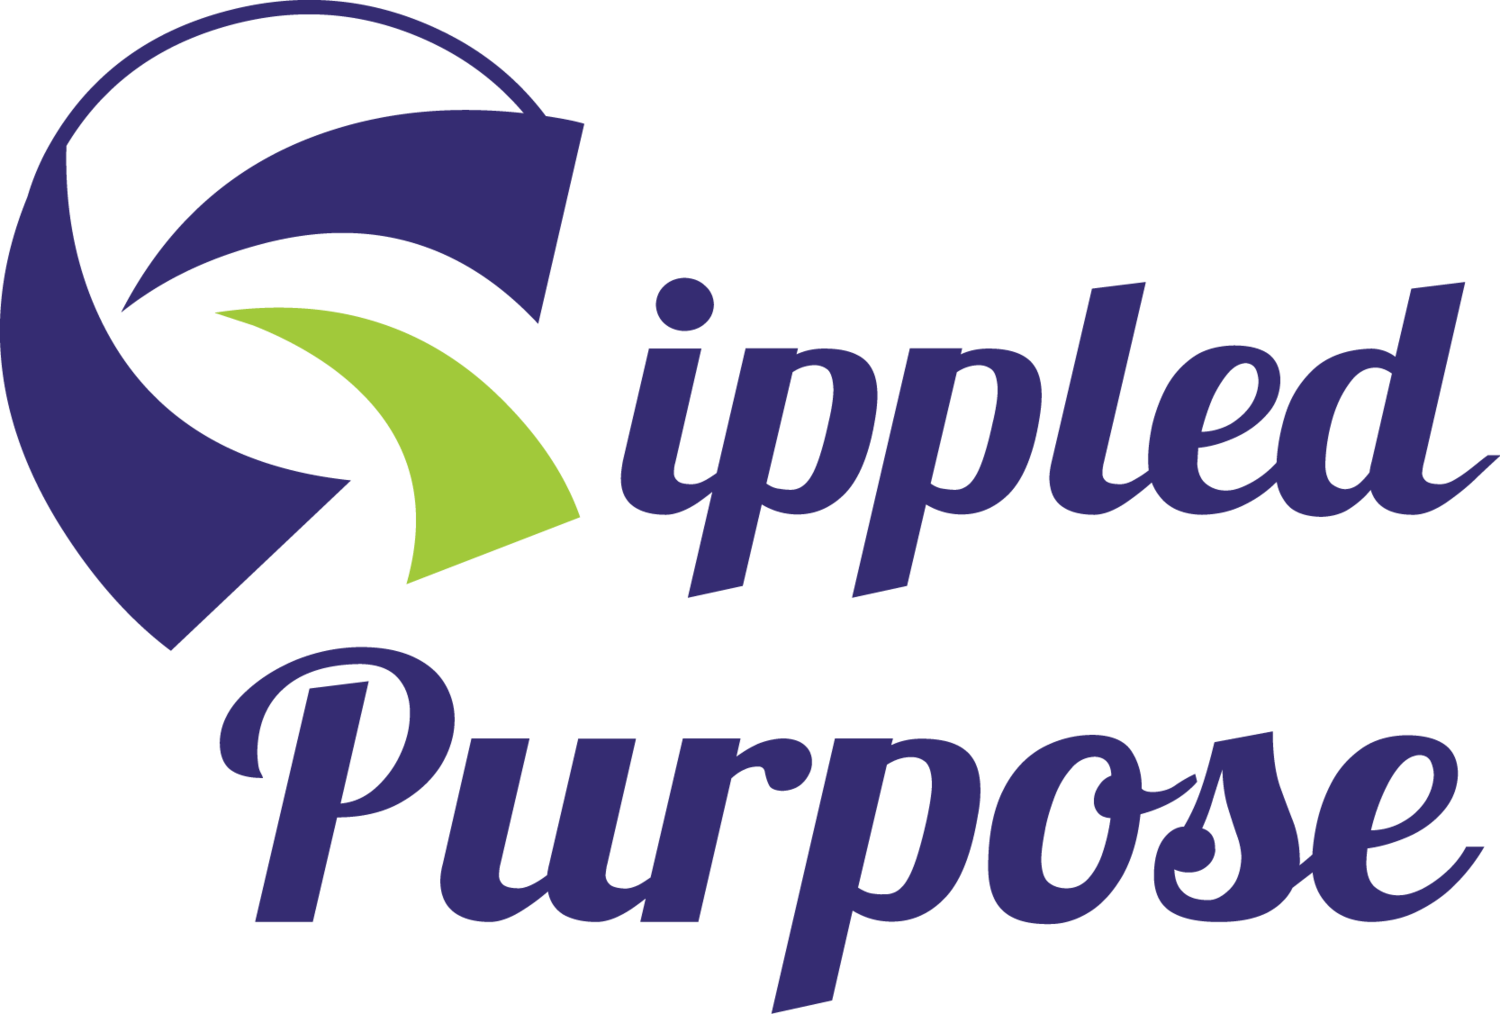 Rippled Purpose